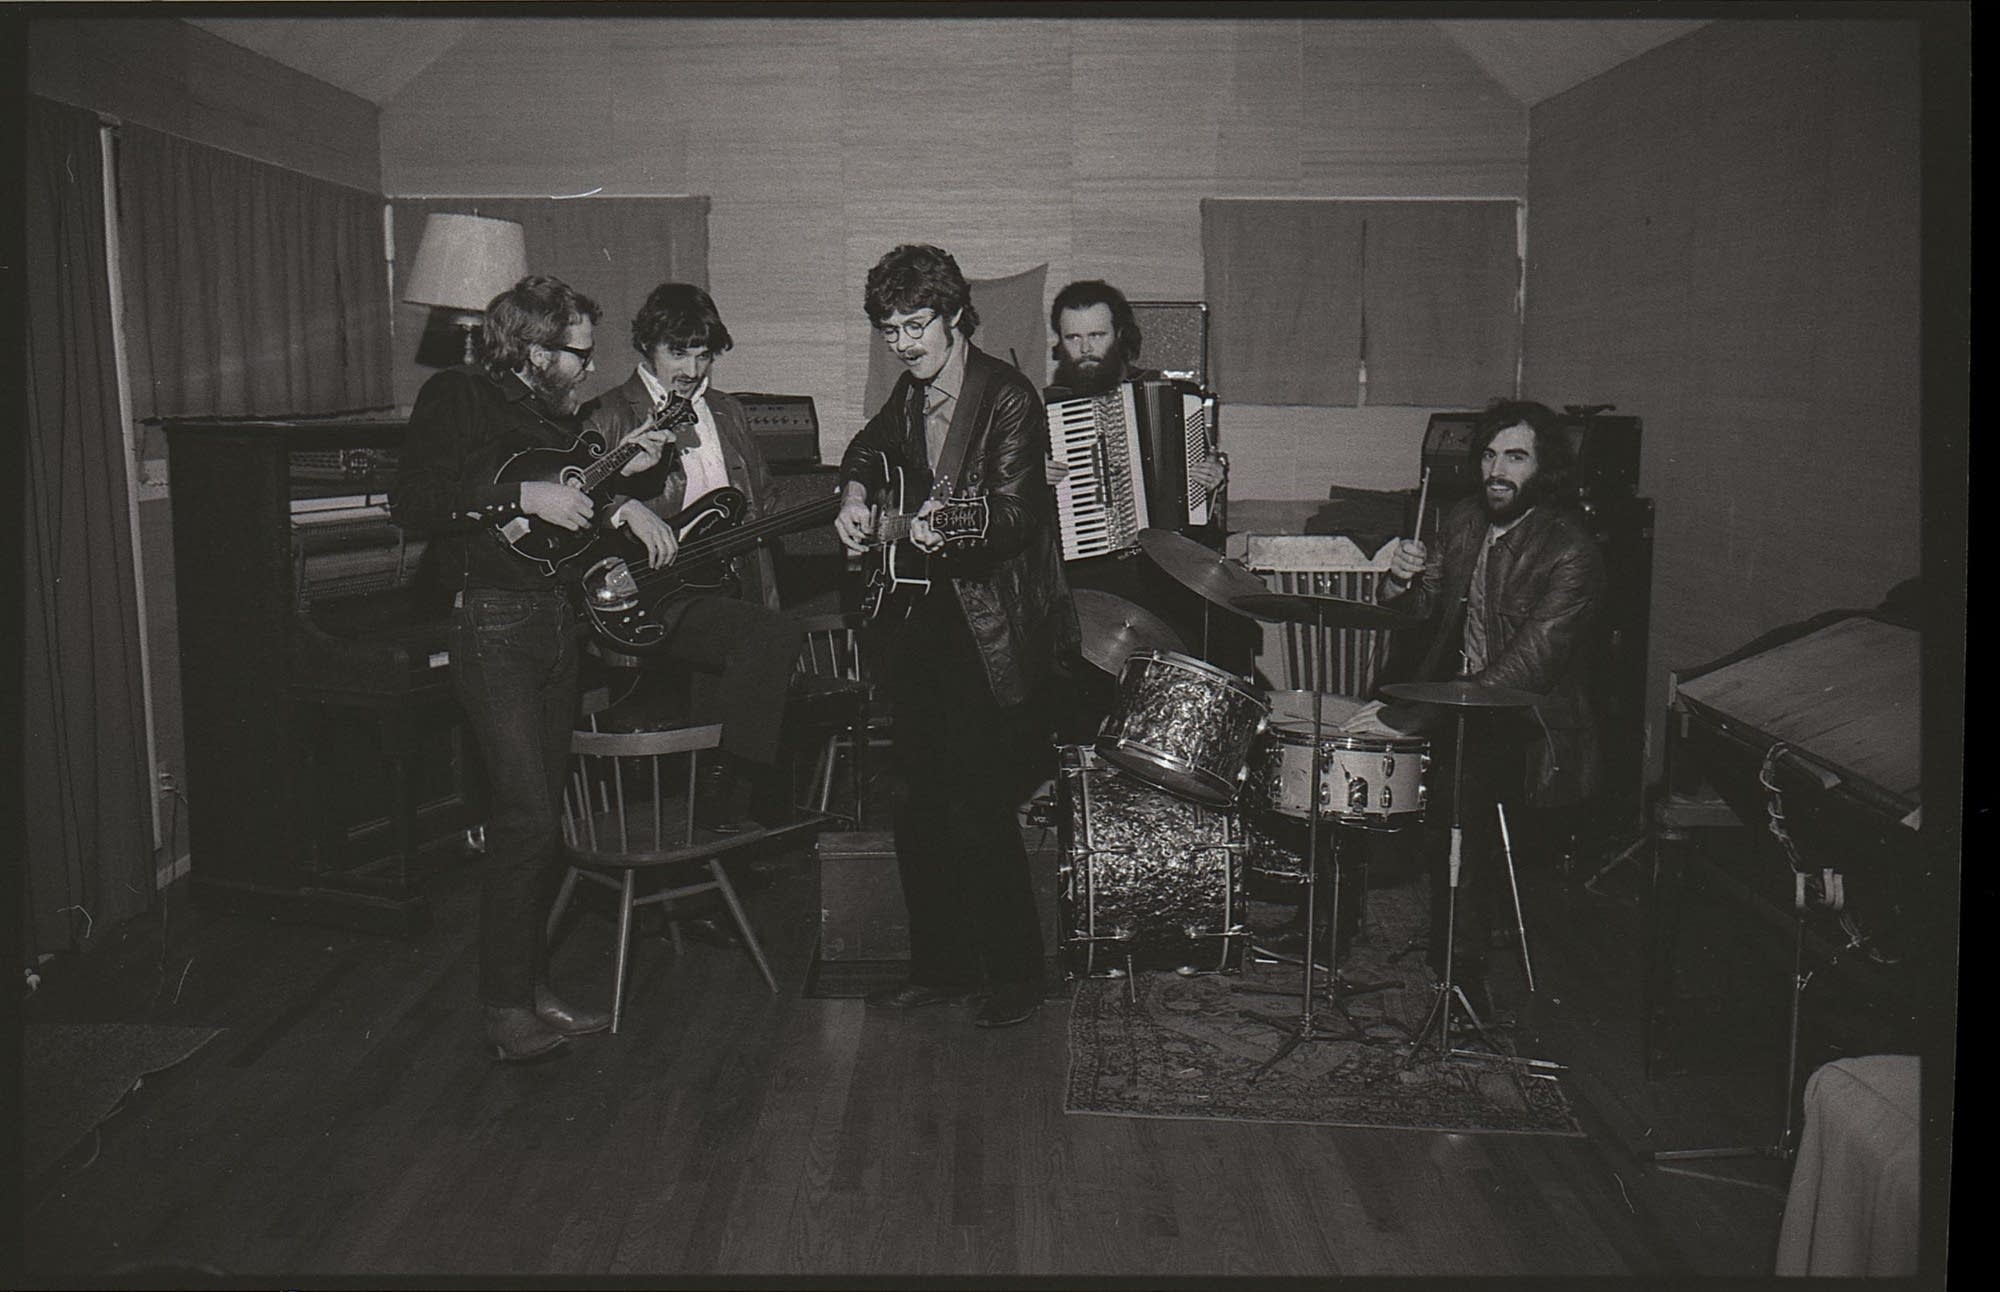 'Once Were Brothers: Robbie Robertson and the Band' press image